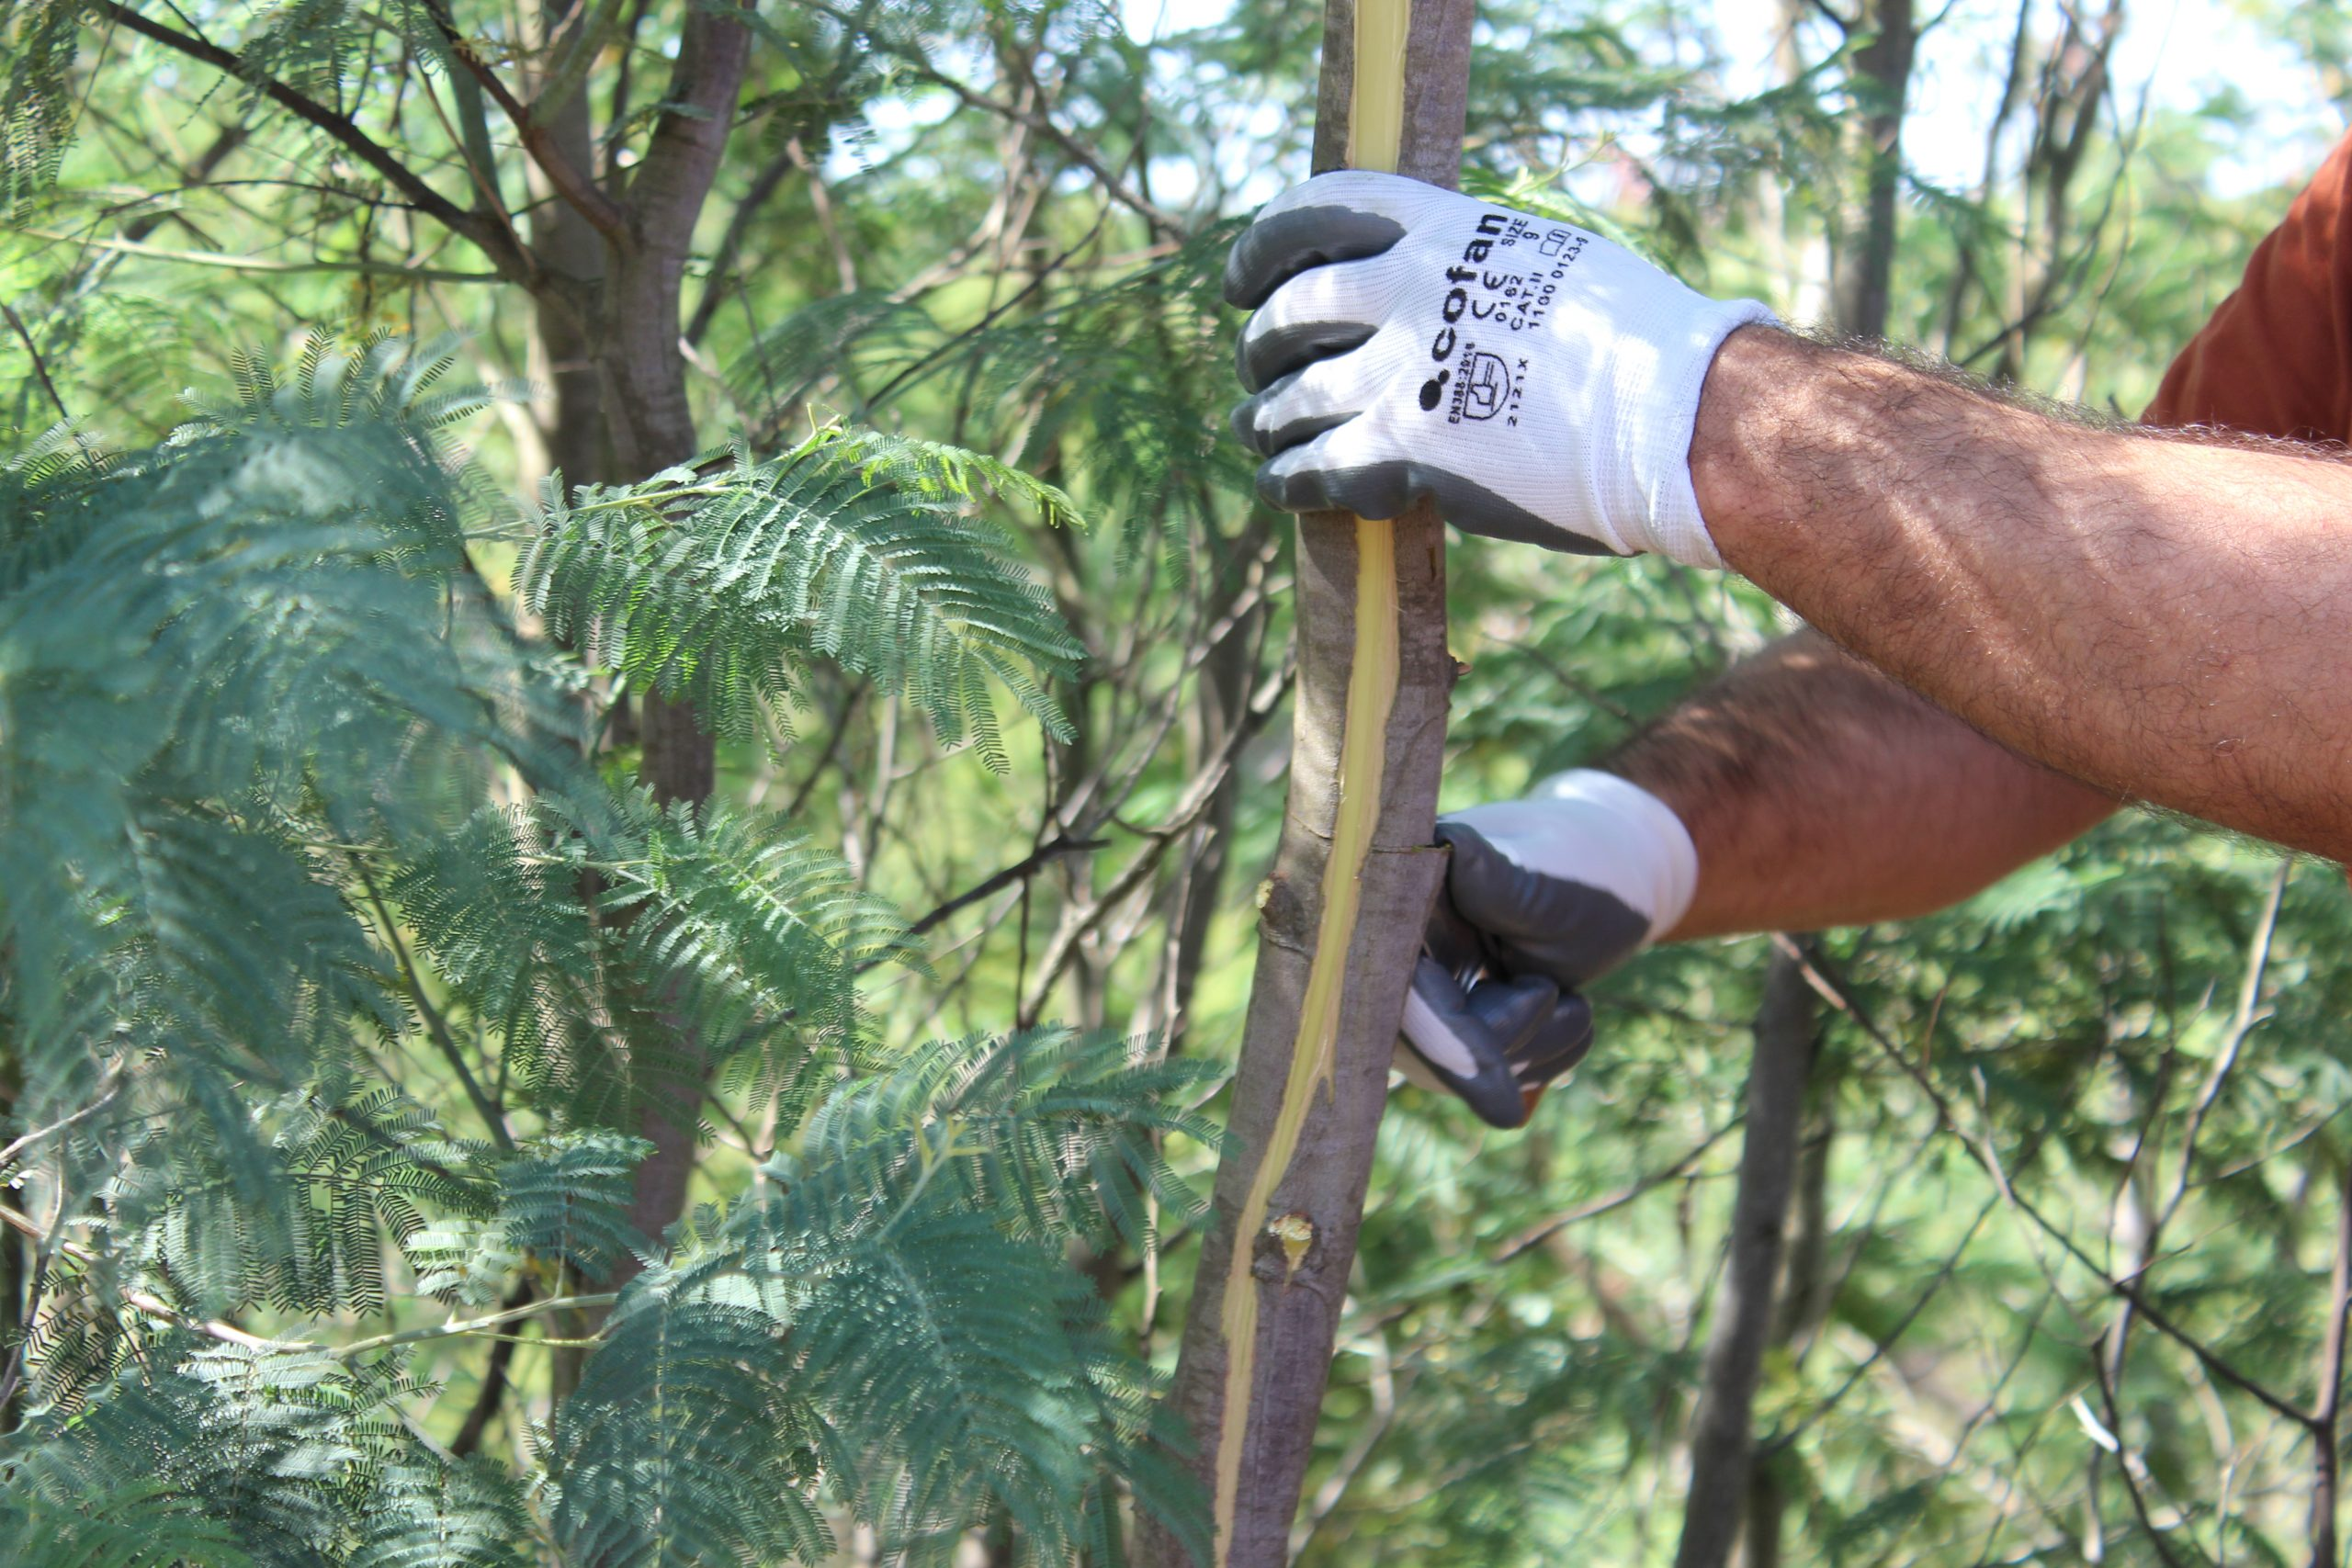 Control of Invasive Plants (Acacia sp.) in the intervention area of LIFE RIBERMINE in Lousal